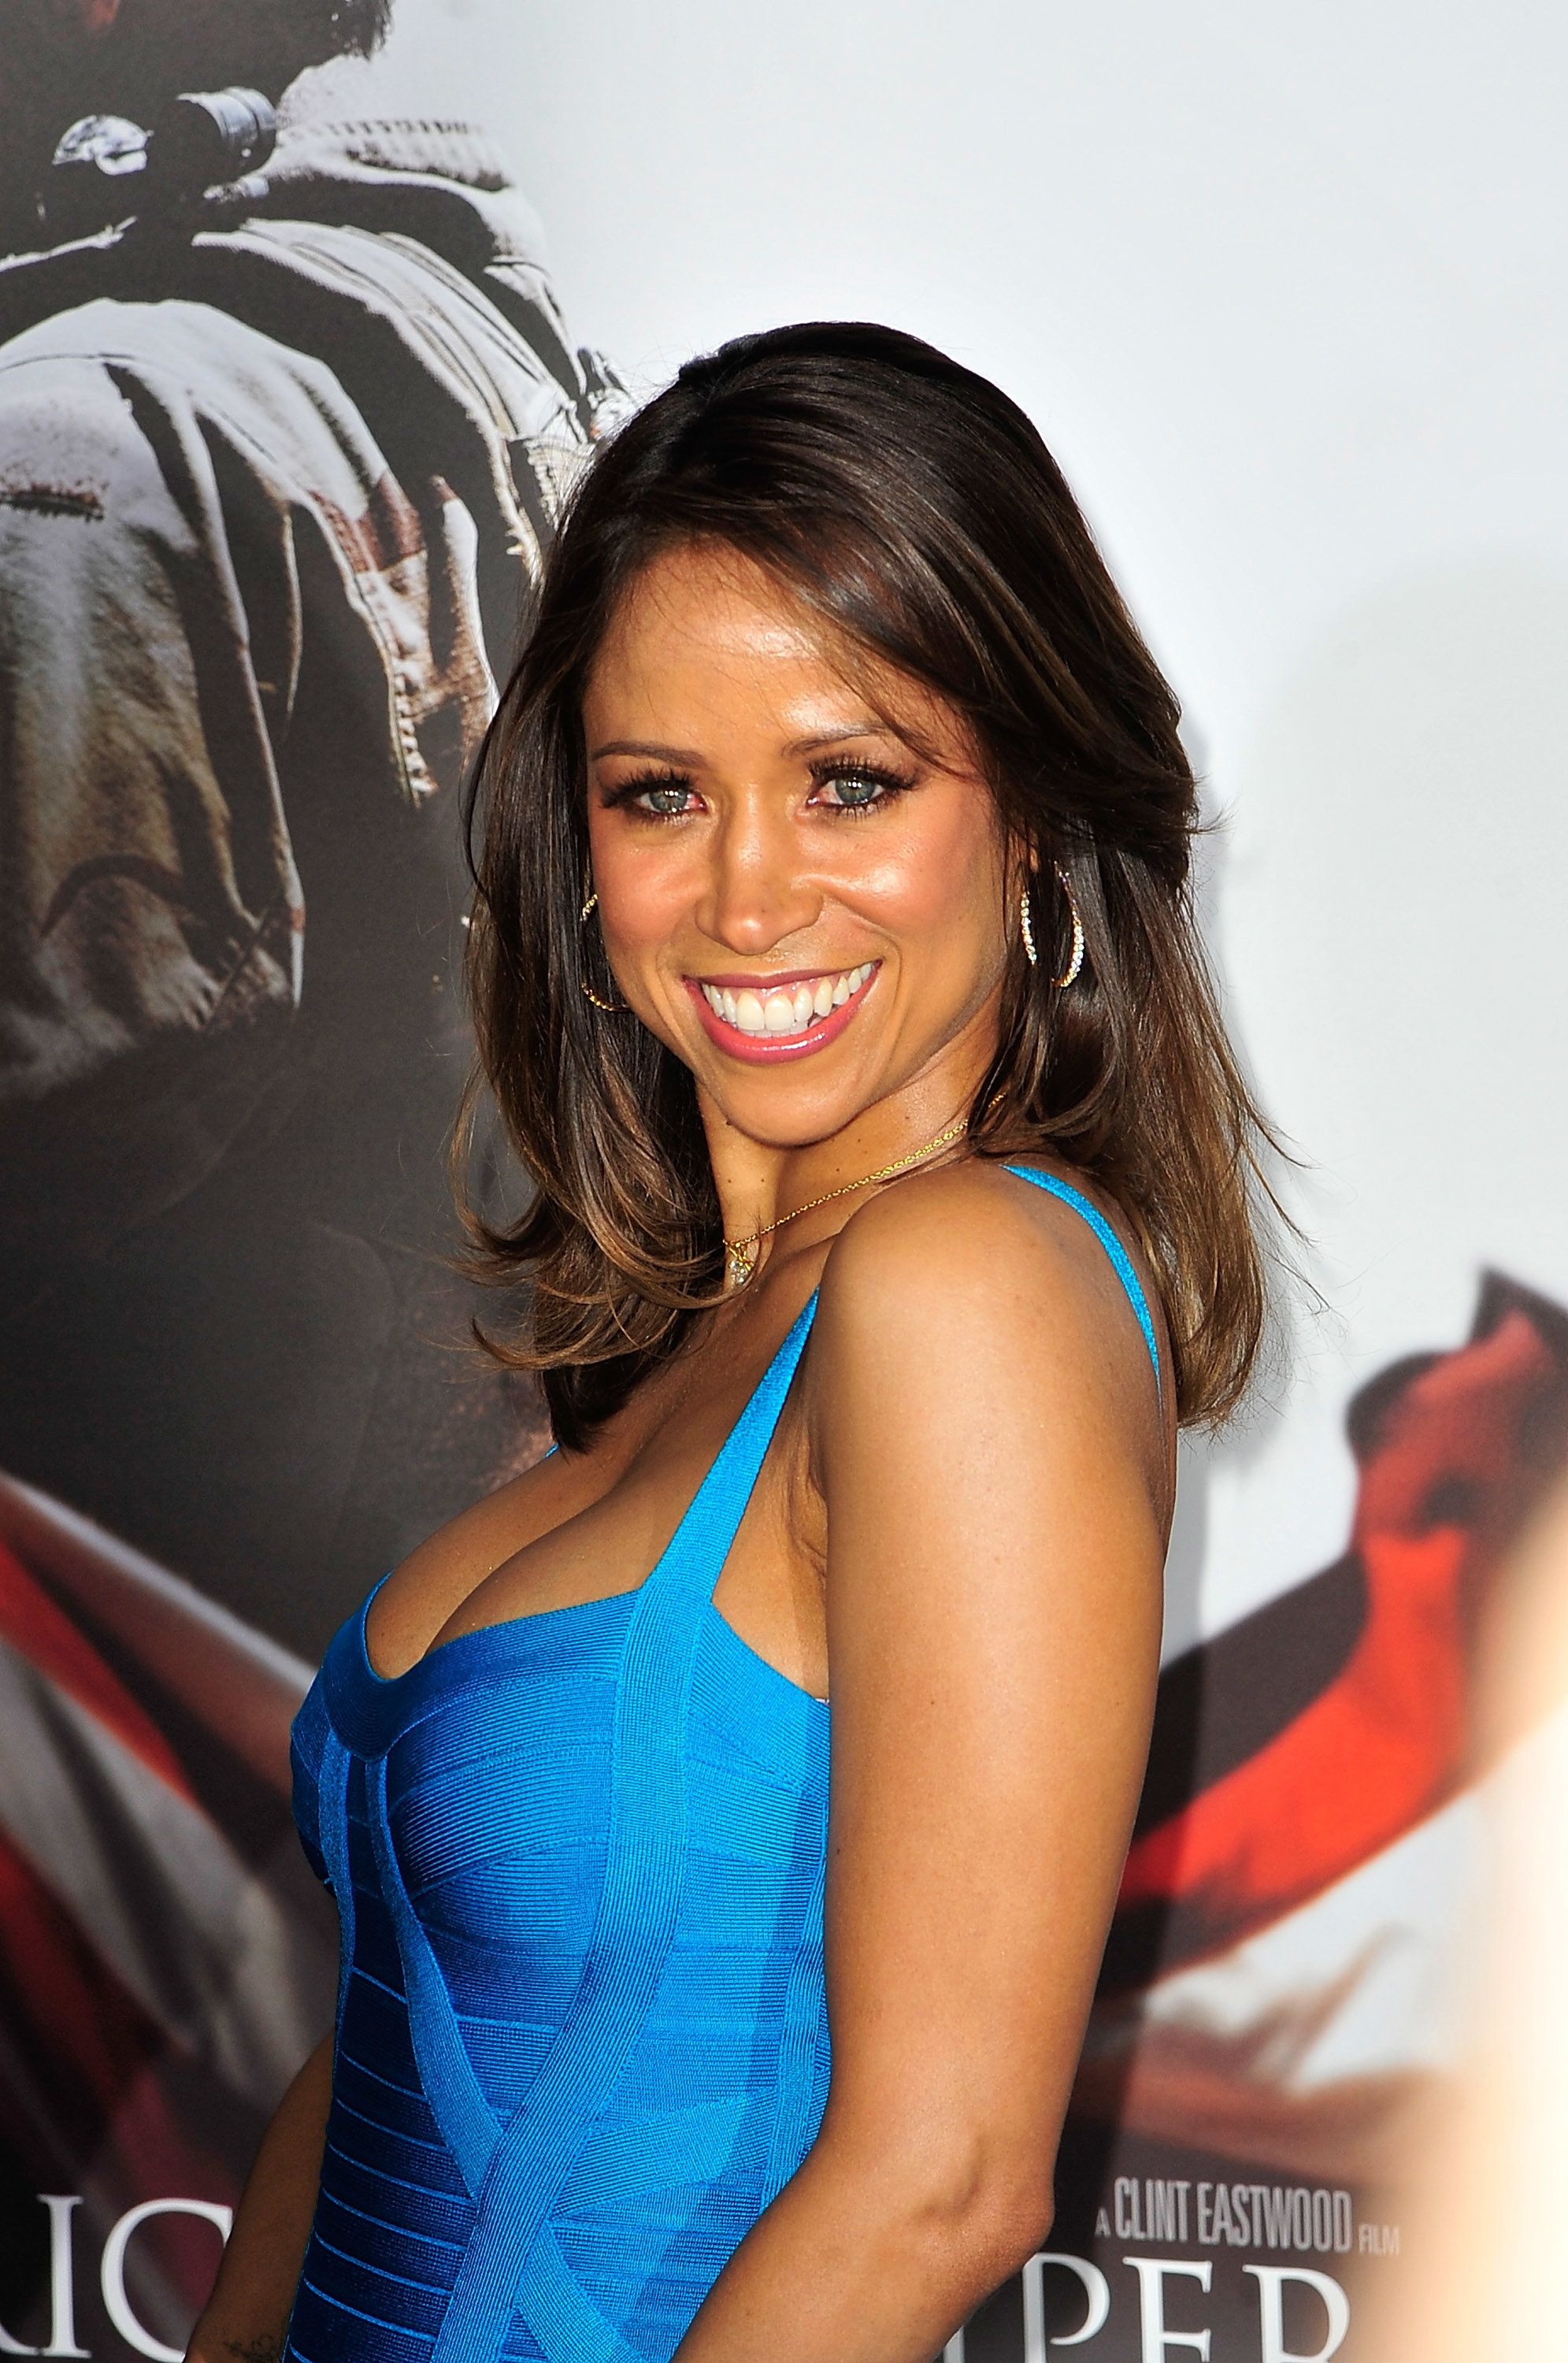 NEW YORK, NY - DECEMBER 15:  Stacey Dash attends 'American Sniper' New York Premiere at Frederick P. Rose Hall, Jazz at Lincoln Center on December 15, 2014 in New York City.  (Photo by Chance Yeh/FilmMagic)